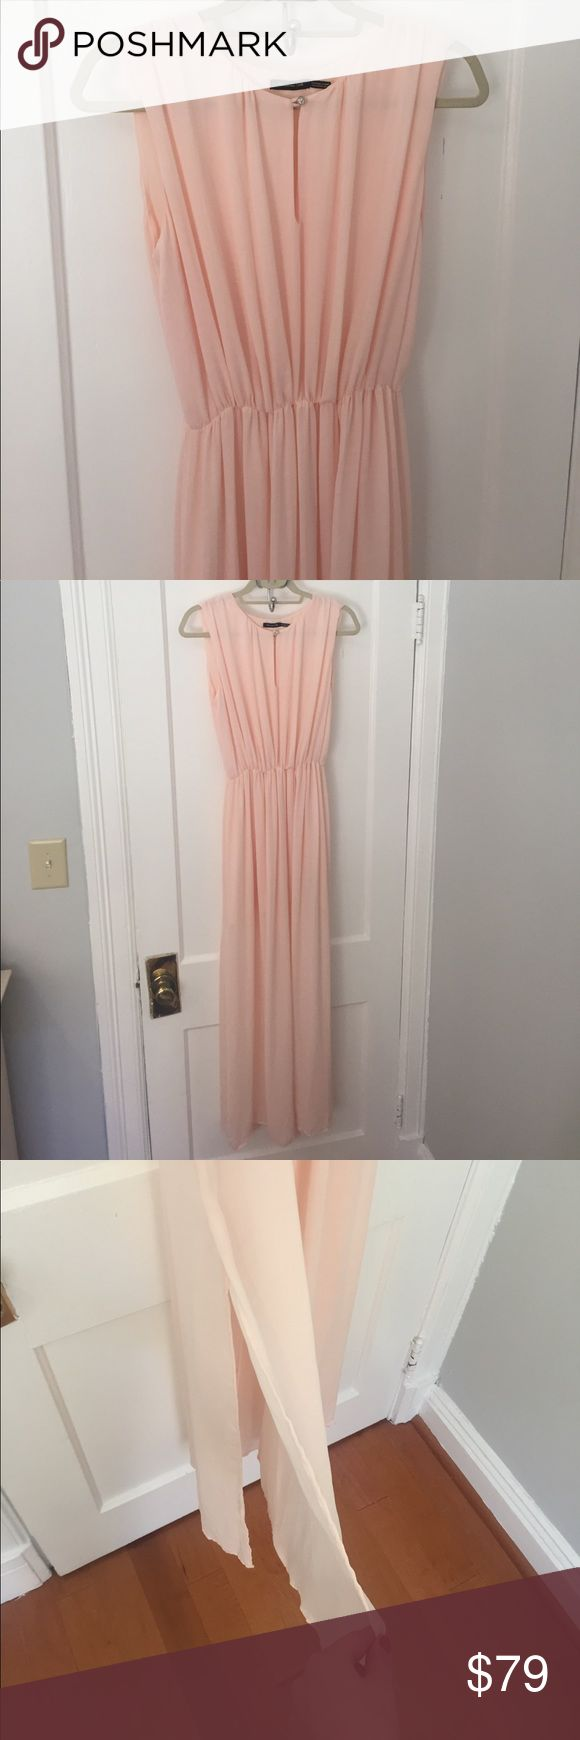 Massimo Dutti Pink Chiffon Dress Lovely maxi with side slits for more movement and a shorter lining. Massimo Dutti Dresses Maxi